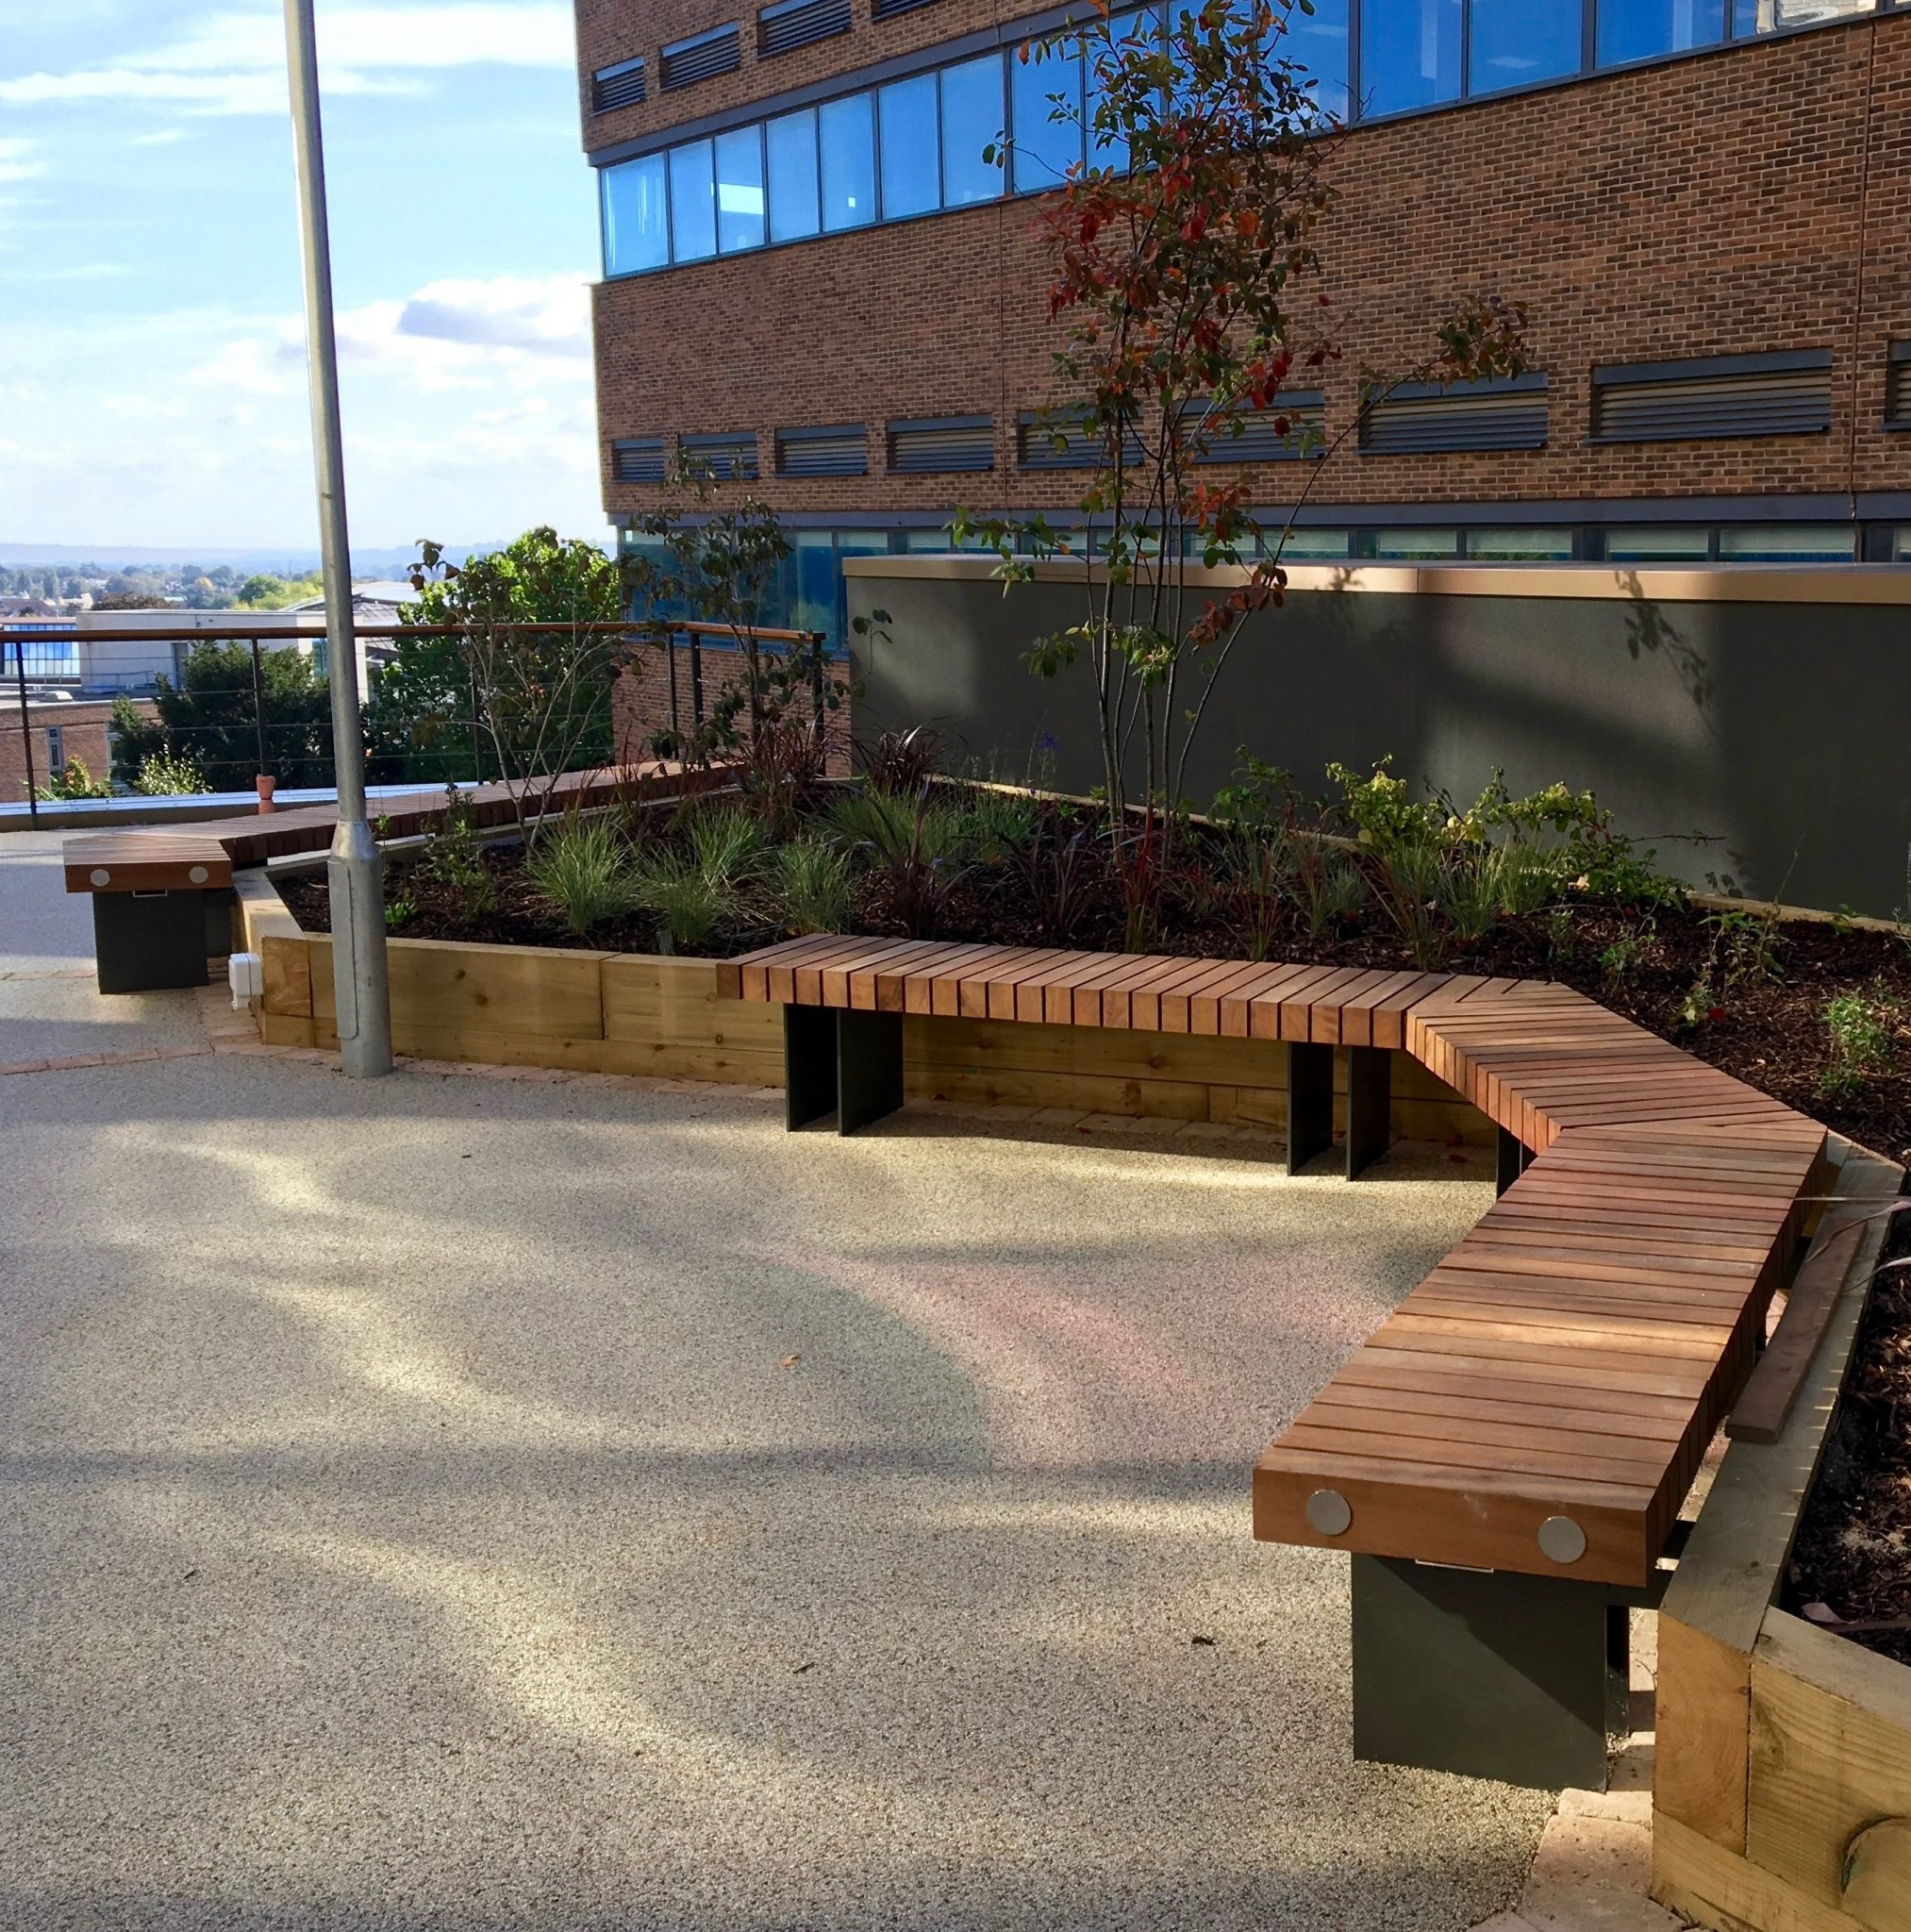 benchmark design limited - Curved Centerline street furniture